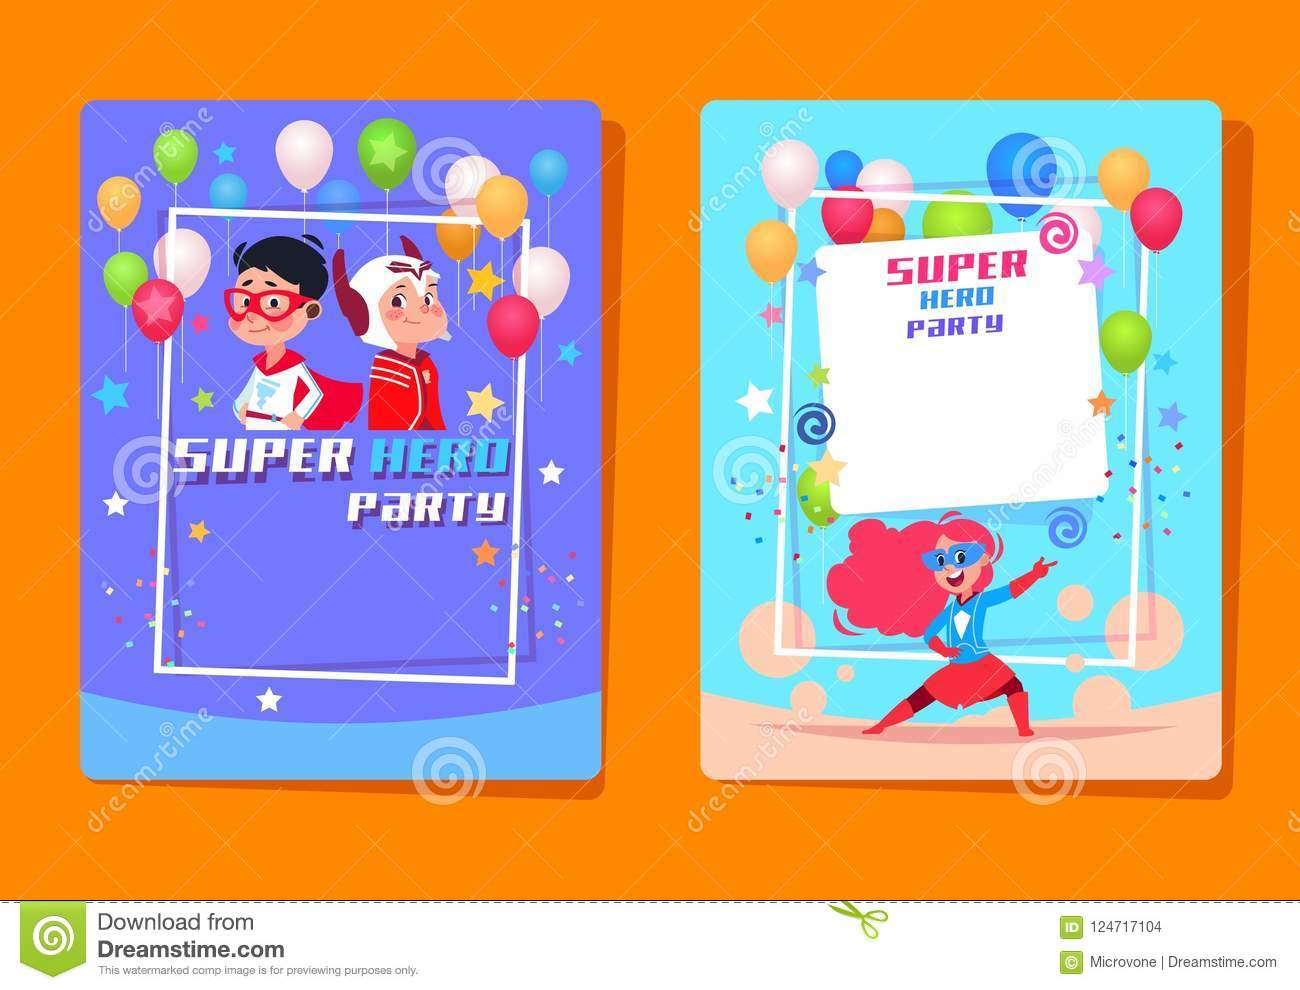 Superhero Kids Party Preschool Children In Superheroes Costumes Birthday Invitation Vector Background